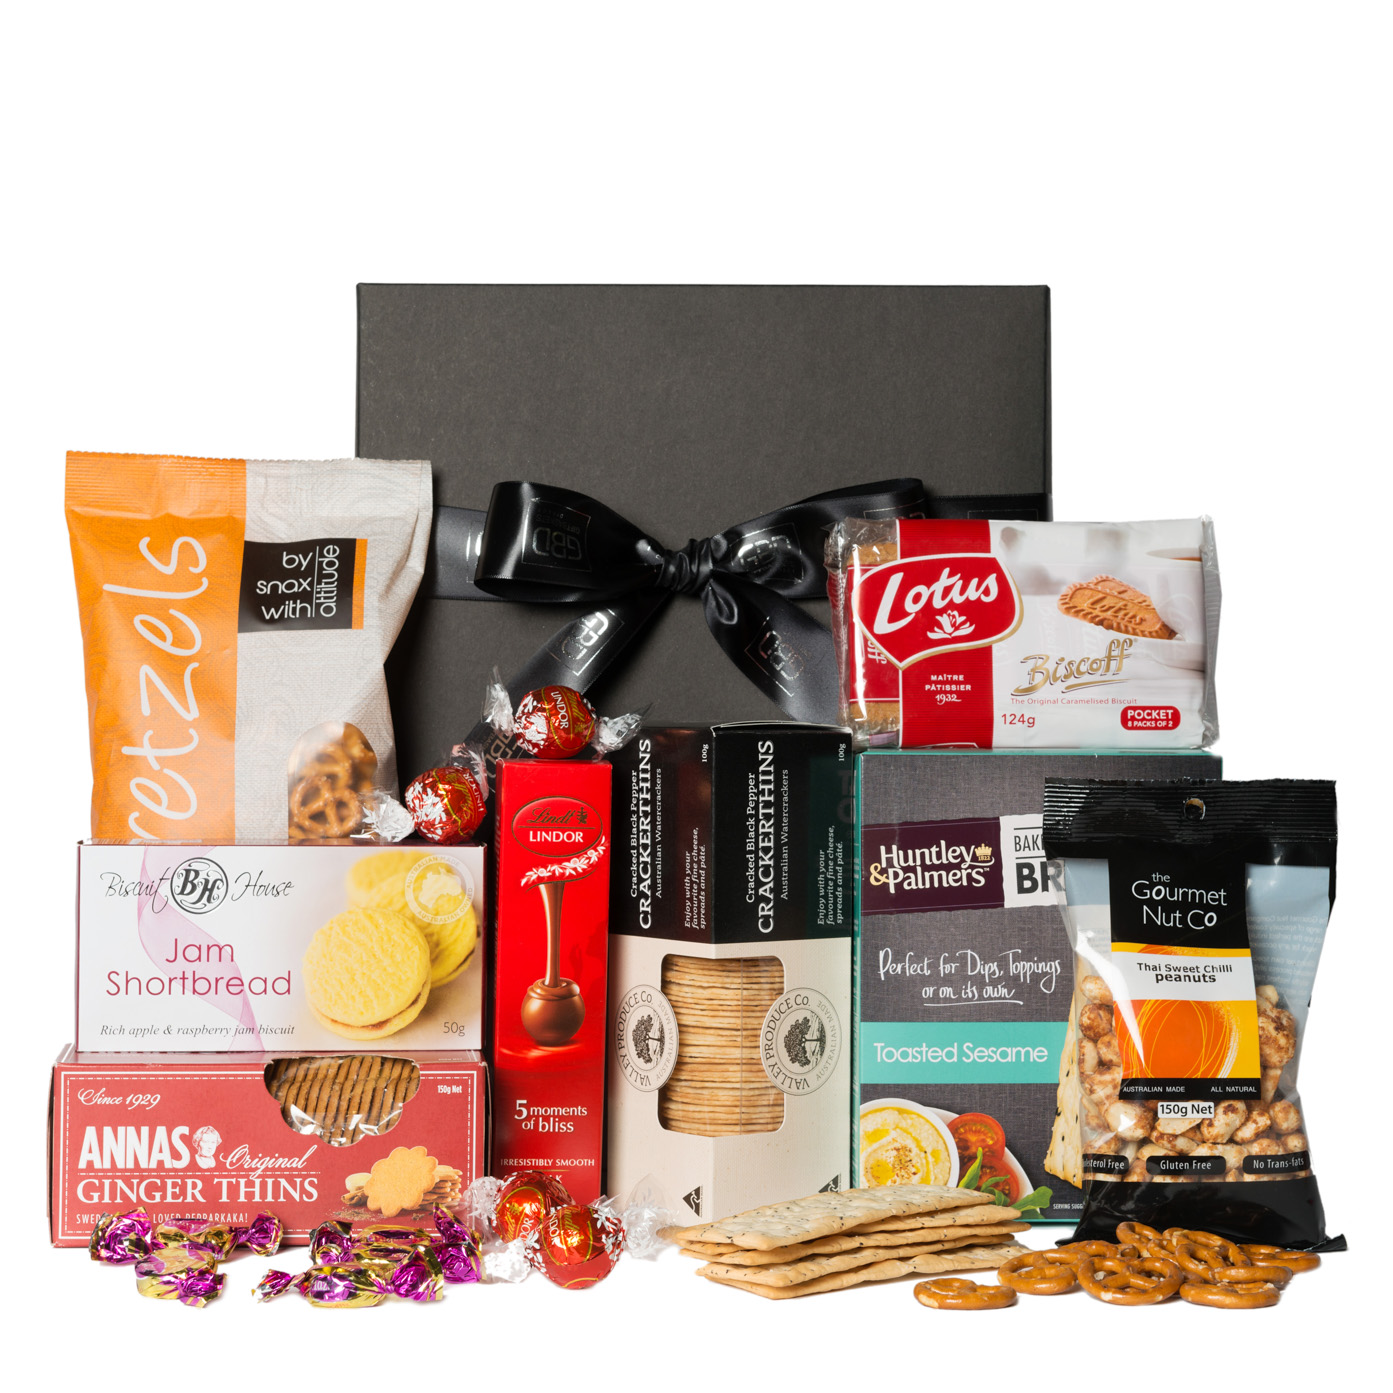 Snack Attack Gift Hamper | Corporate Gift Hampers | Gift Baskets Directs Australia